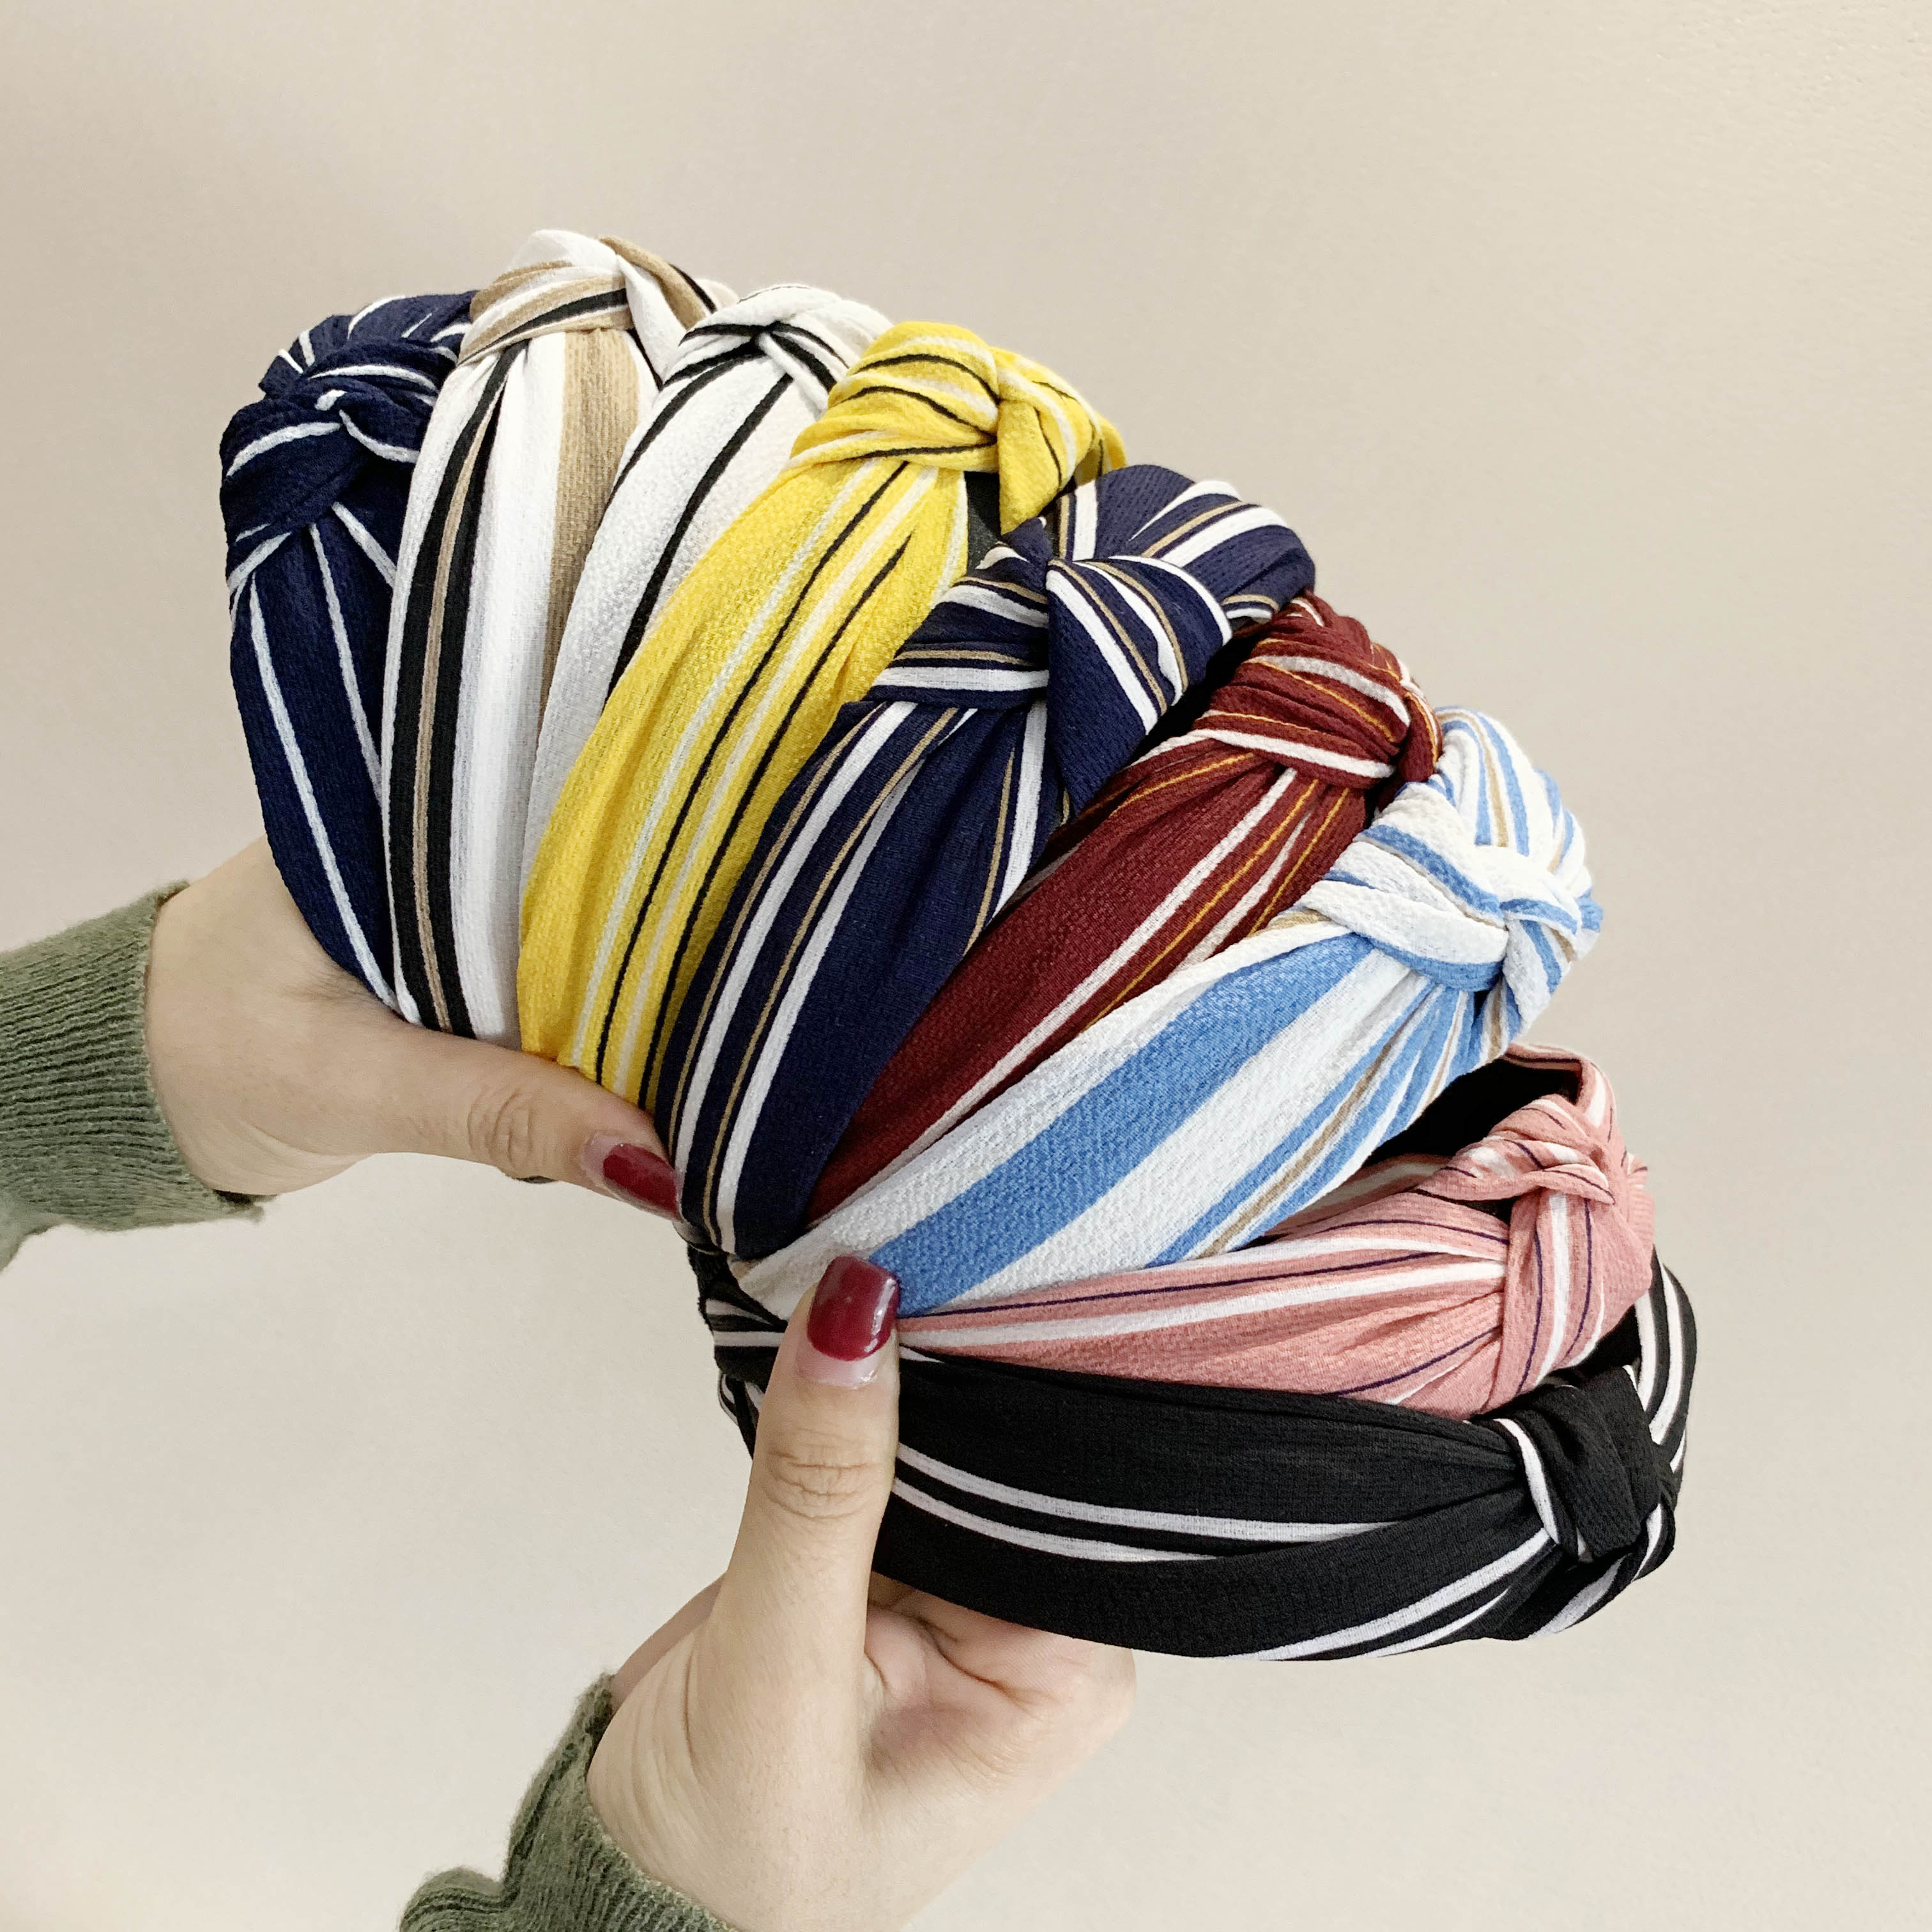 Chen Yan New Stripe Headband Fashion Chiffon Headbands Knot Cross Hairband XLFG7